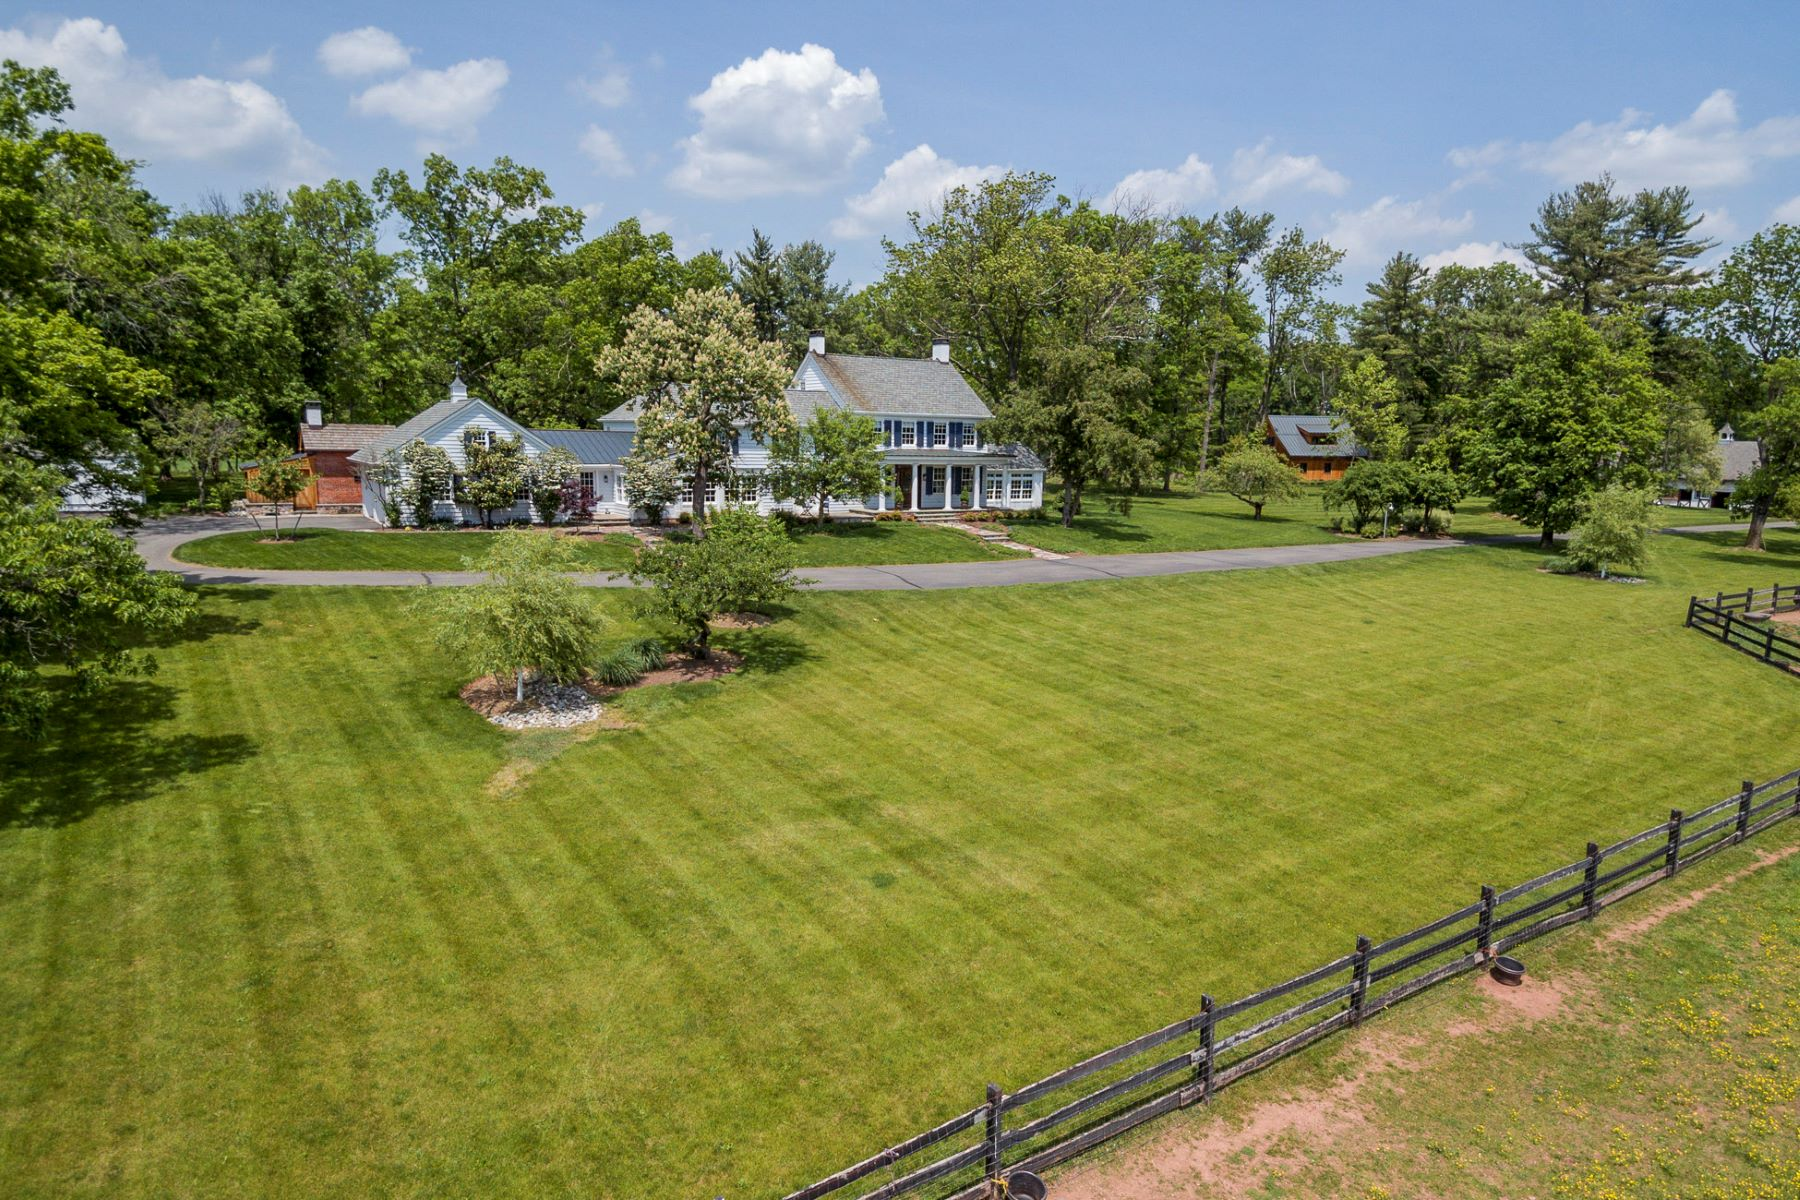 Single Family Home for Sale at Historic Farm Reimagined for the Modern Equestrian - Hopewell Township 266 Province Line Road, Skillman, New Jersey 08558 United States